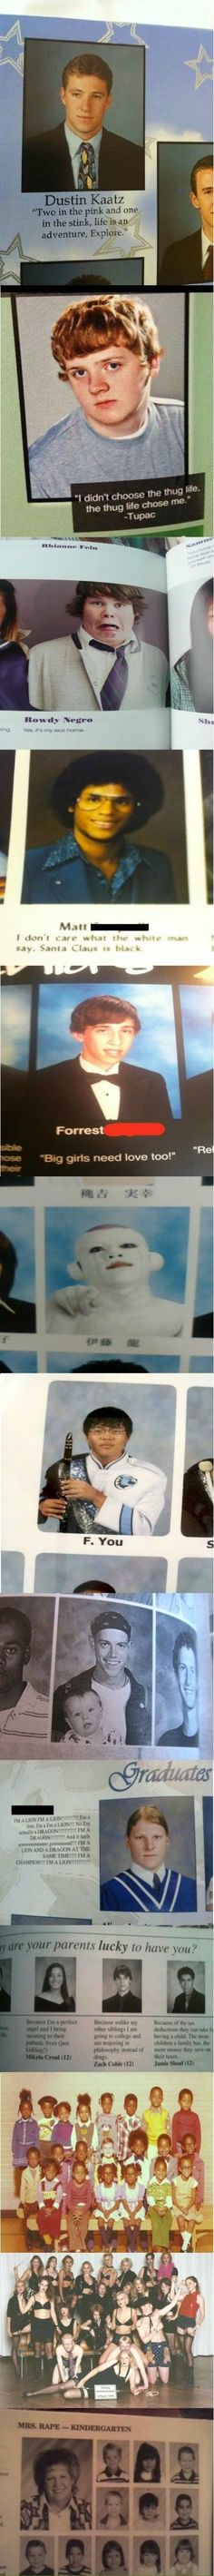 Images of the day -65 pics- Funny Yearbook Photos (Compilation)>> oh gosh what did I just see?